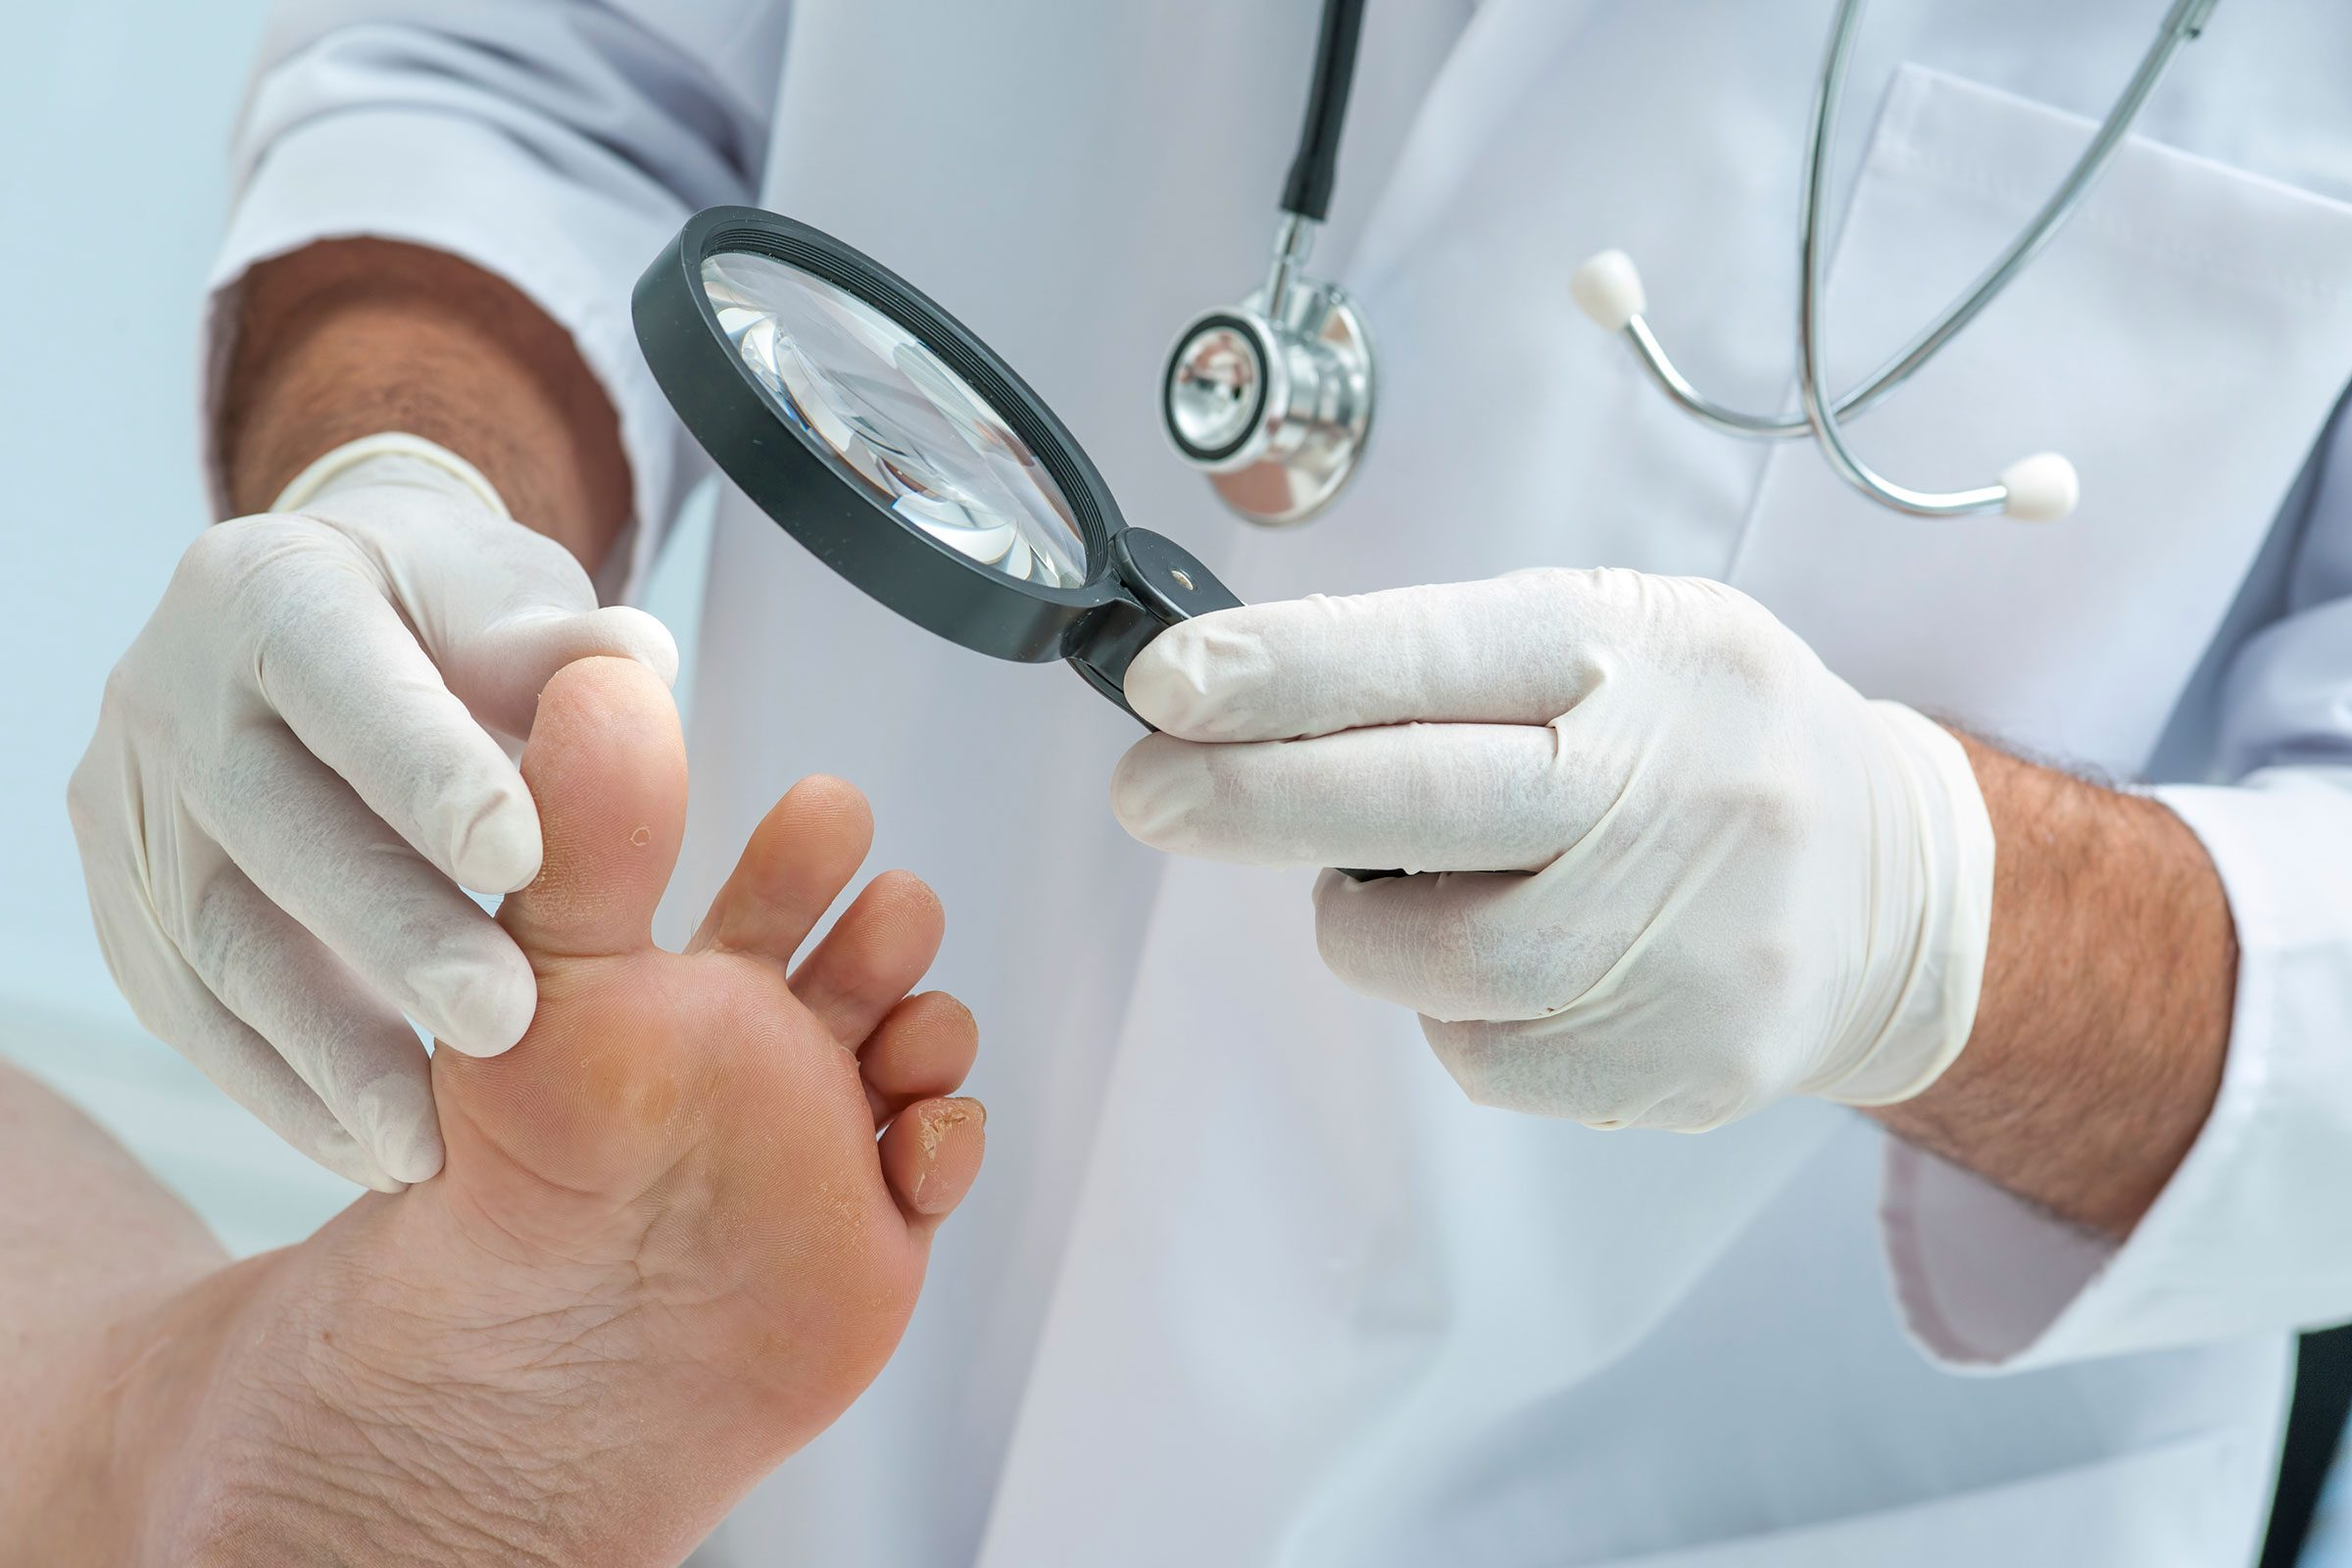 Signs of Disease Your Feet Can Reveal | The Healthy